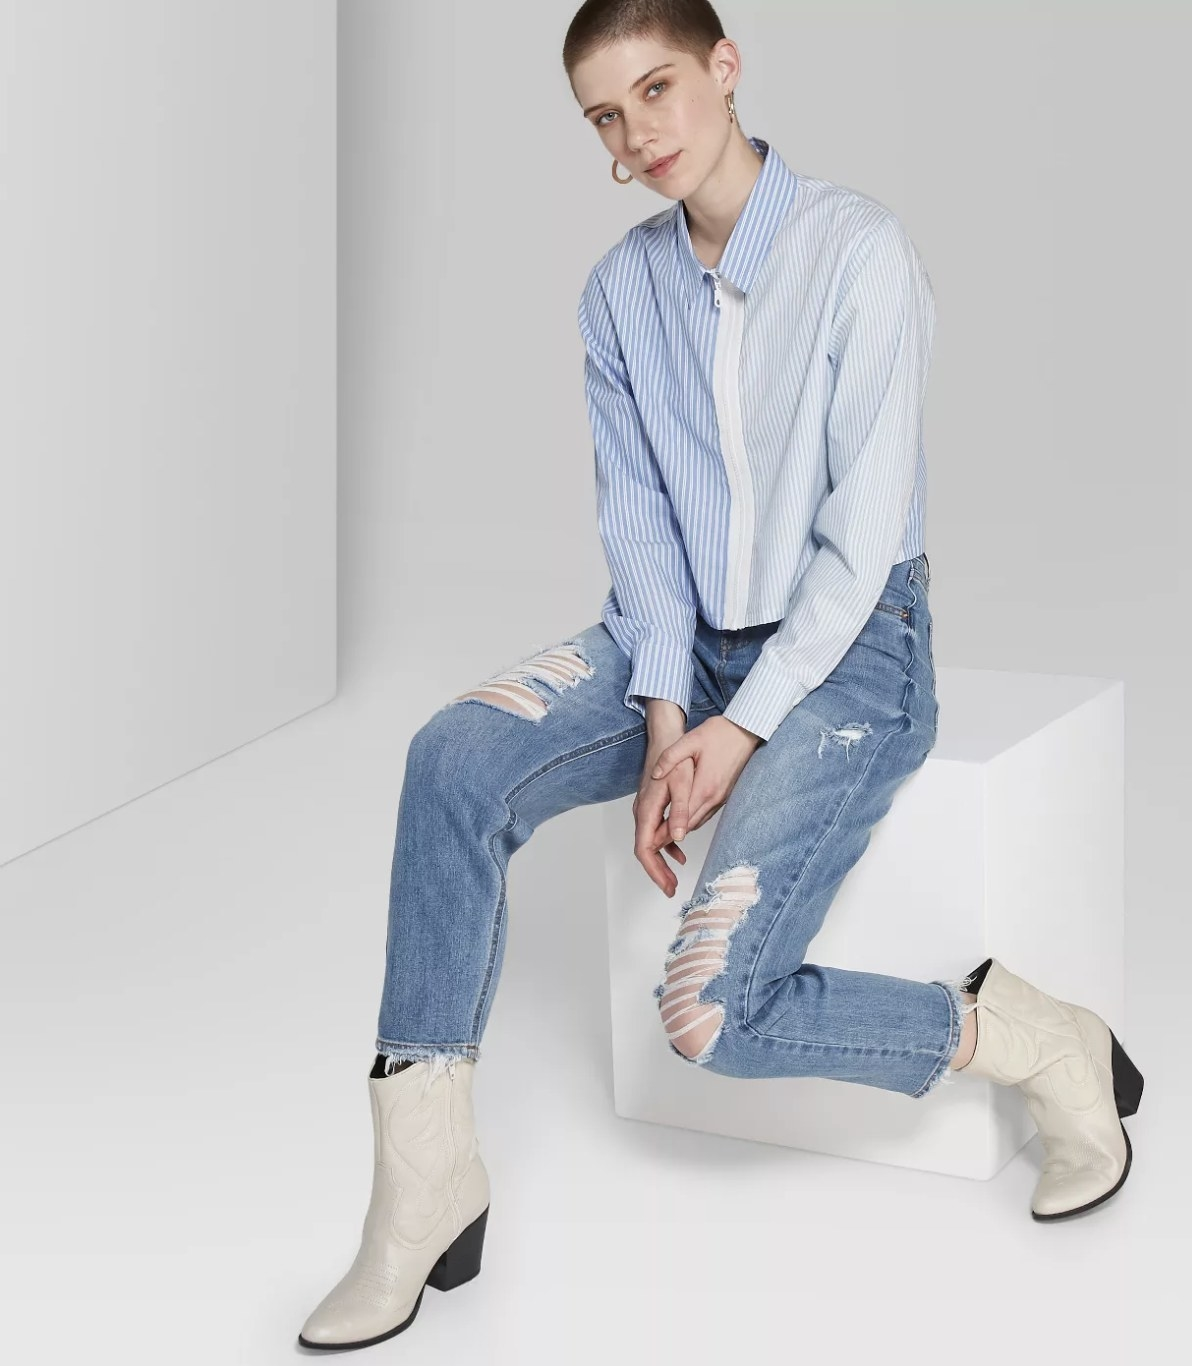 Model in the ripped, light wash, straight-legged jeans